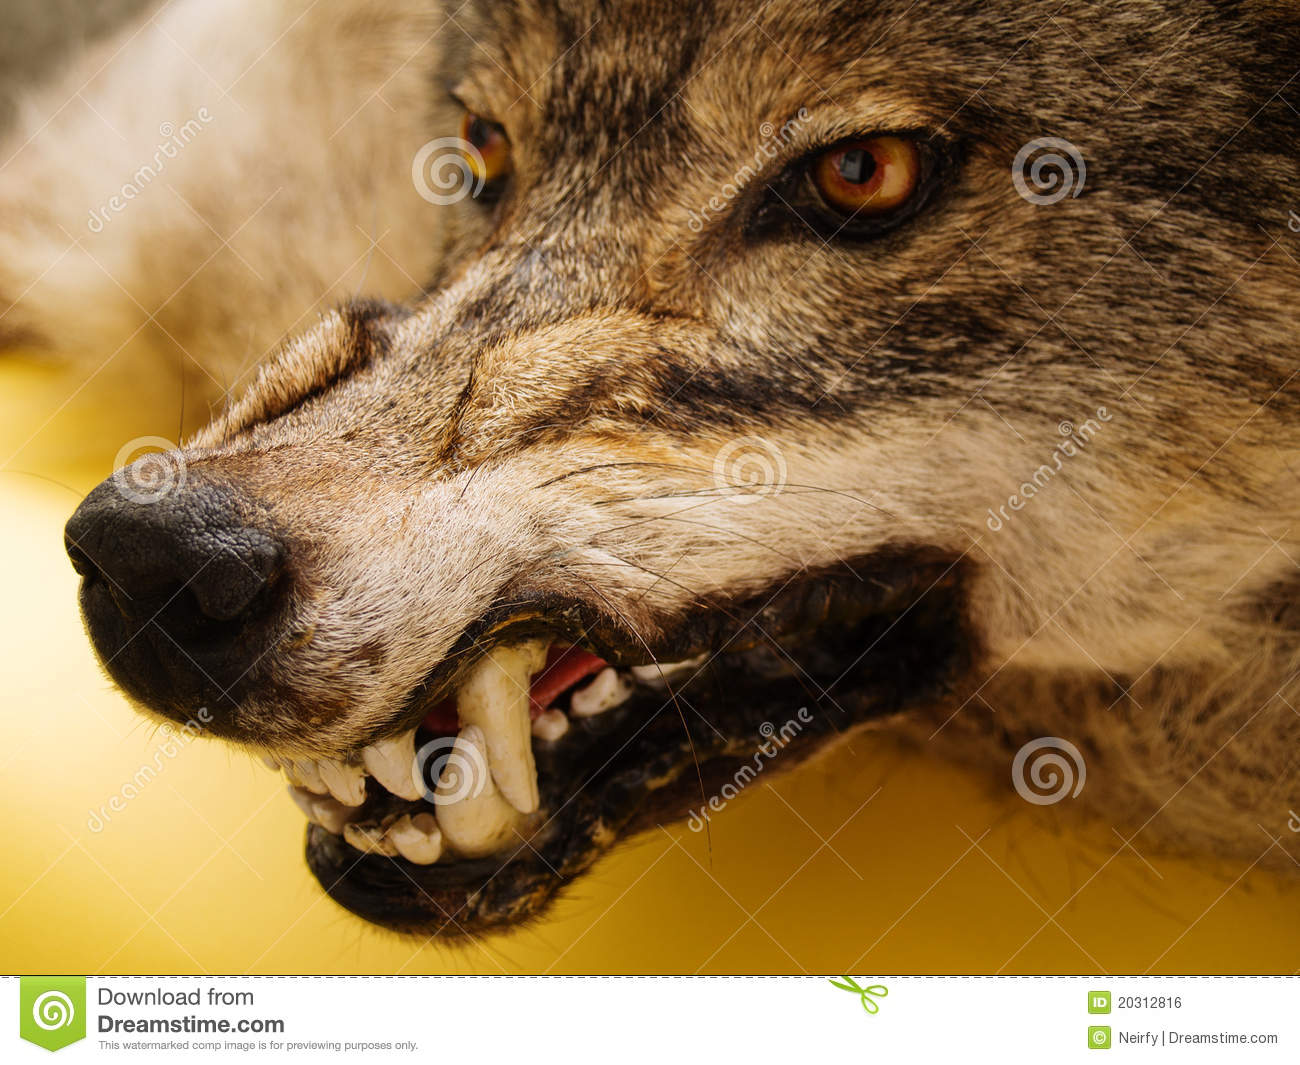 http://www.dreamstime.com/royalty-free-stock-image-snarl-wolf-image20312816